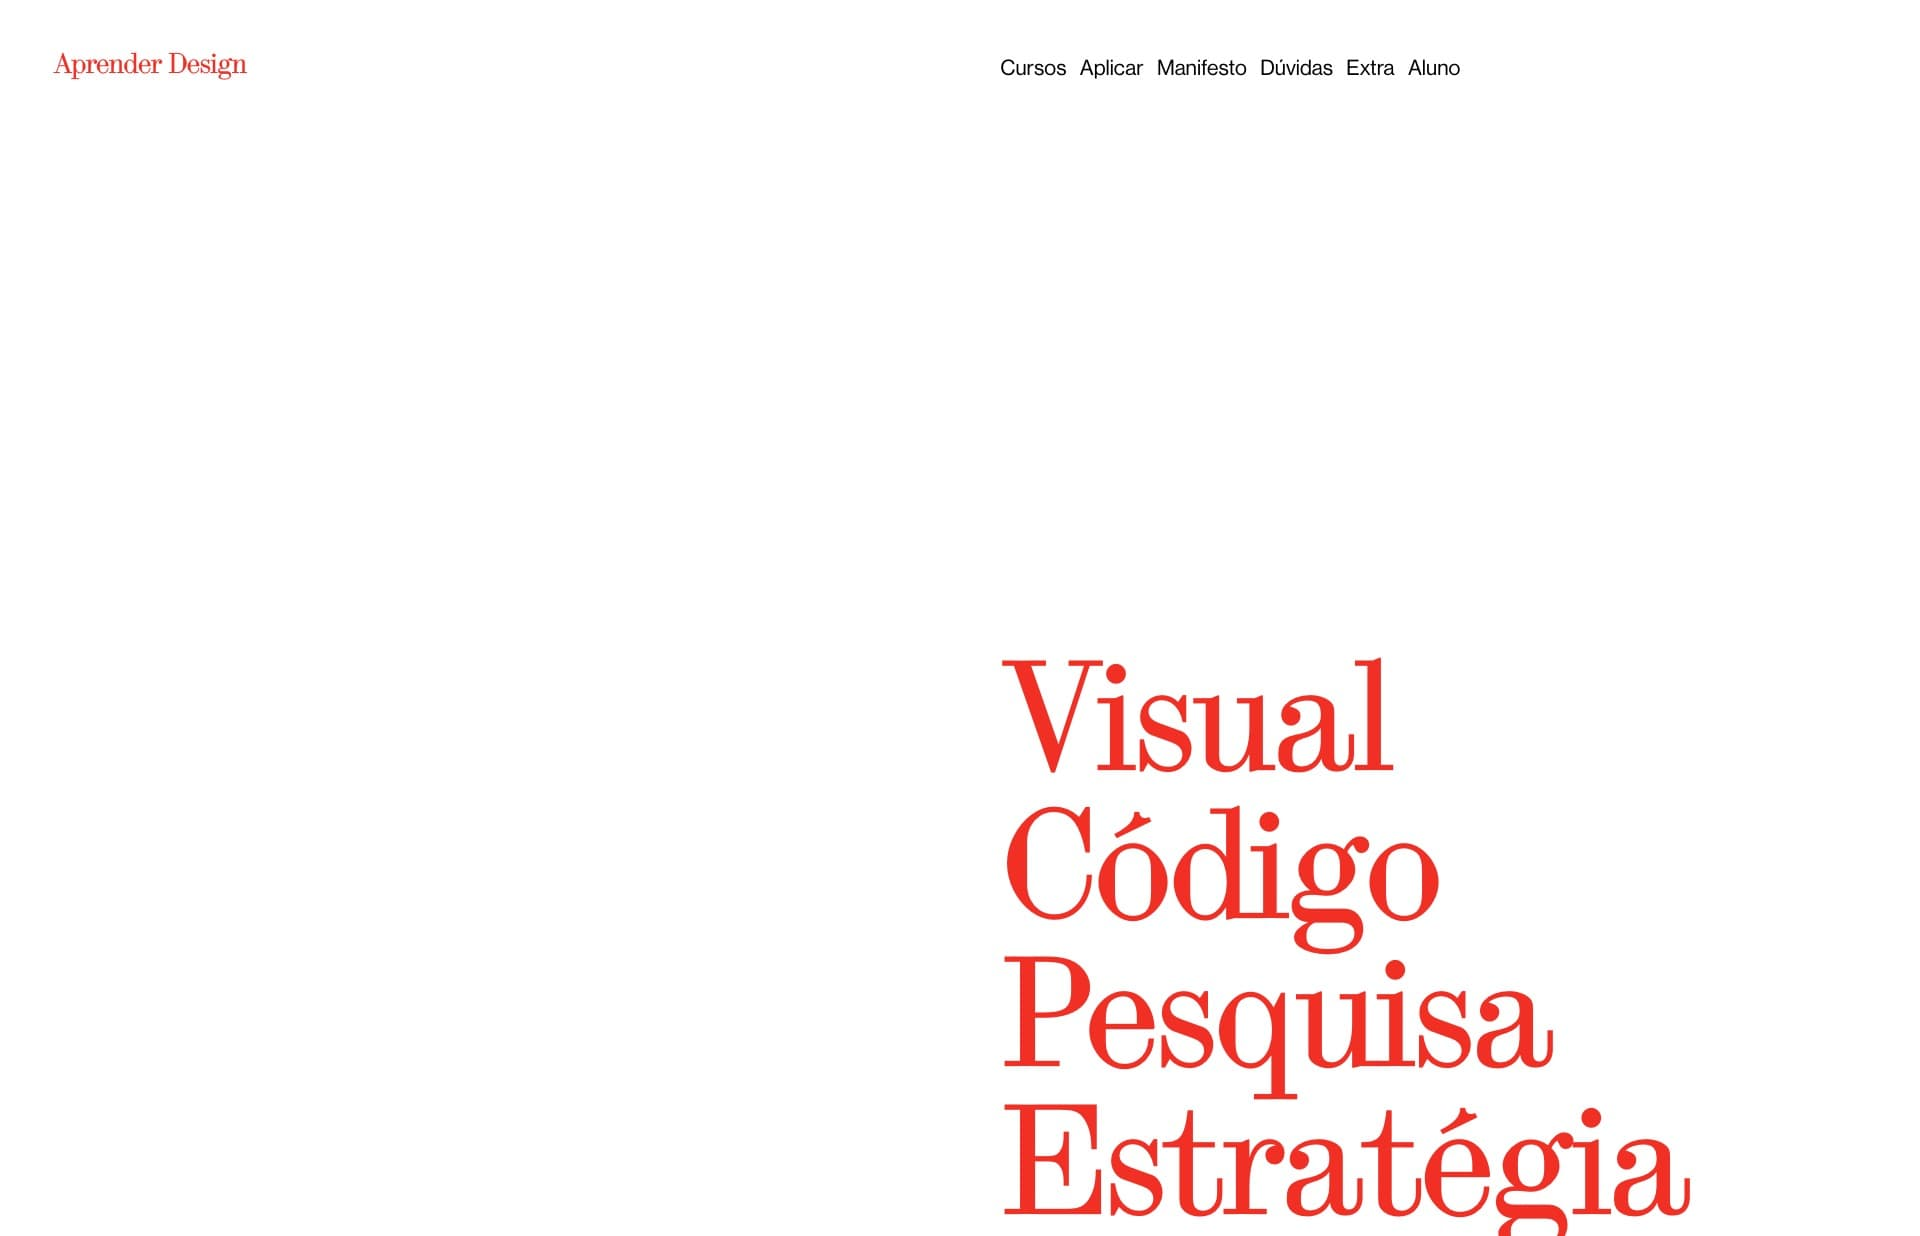 Screenshot of the website Aprender Design, featured on The Gallery, a curated collection of minimal websites